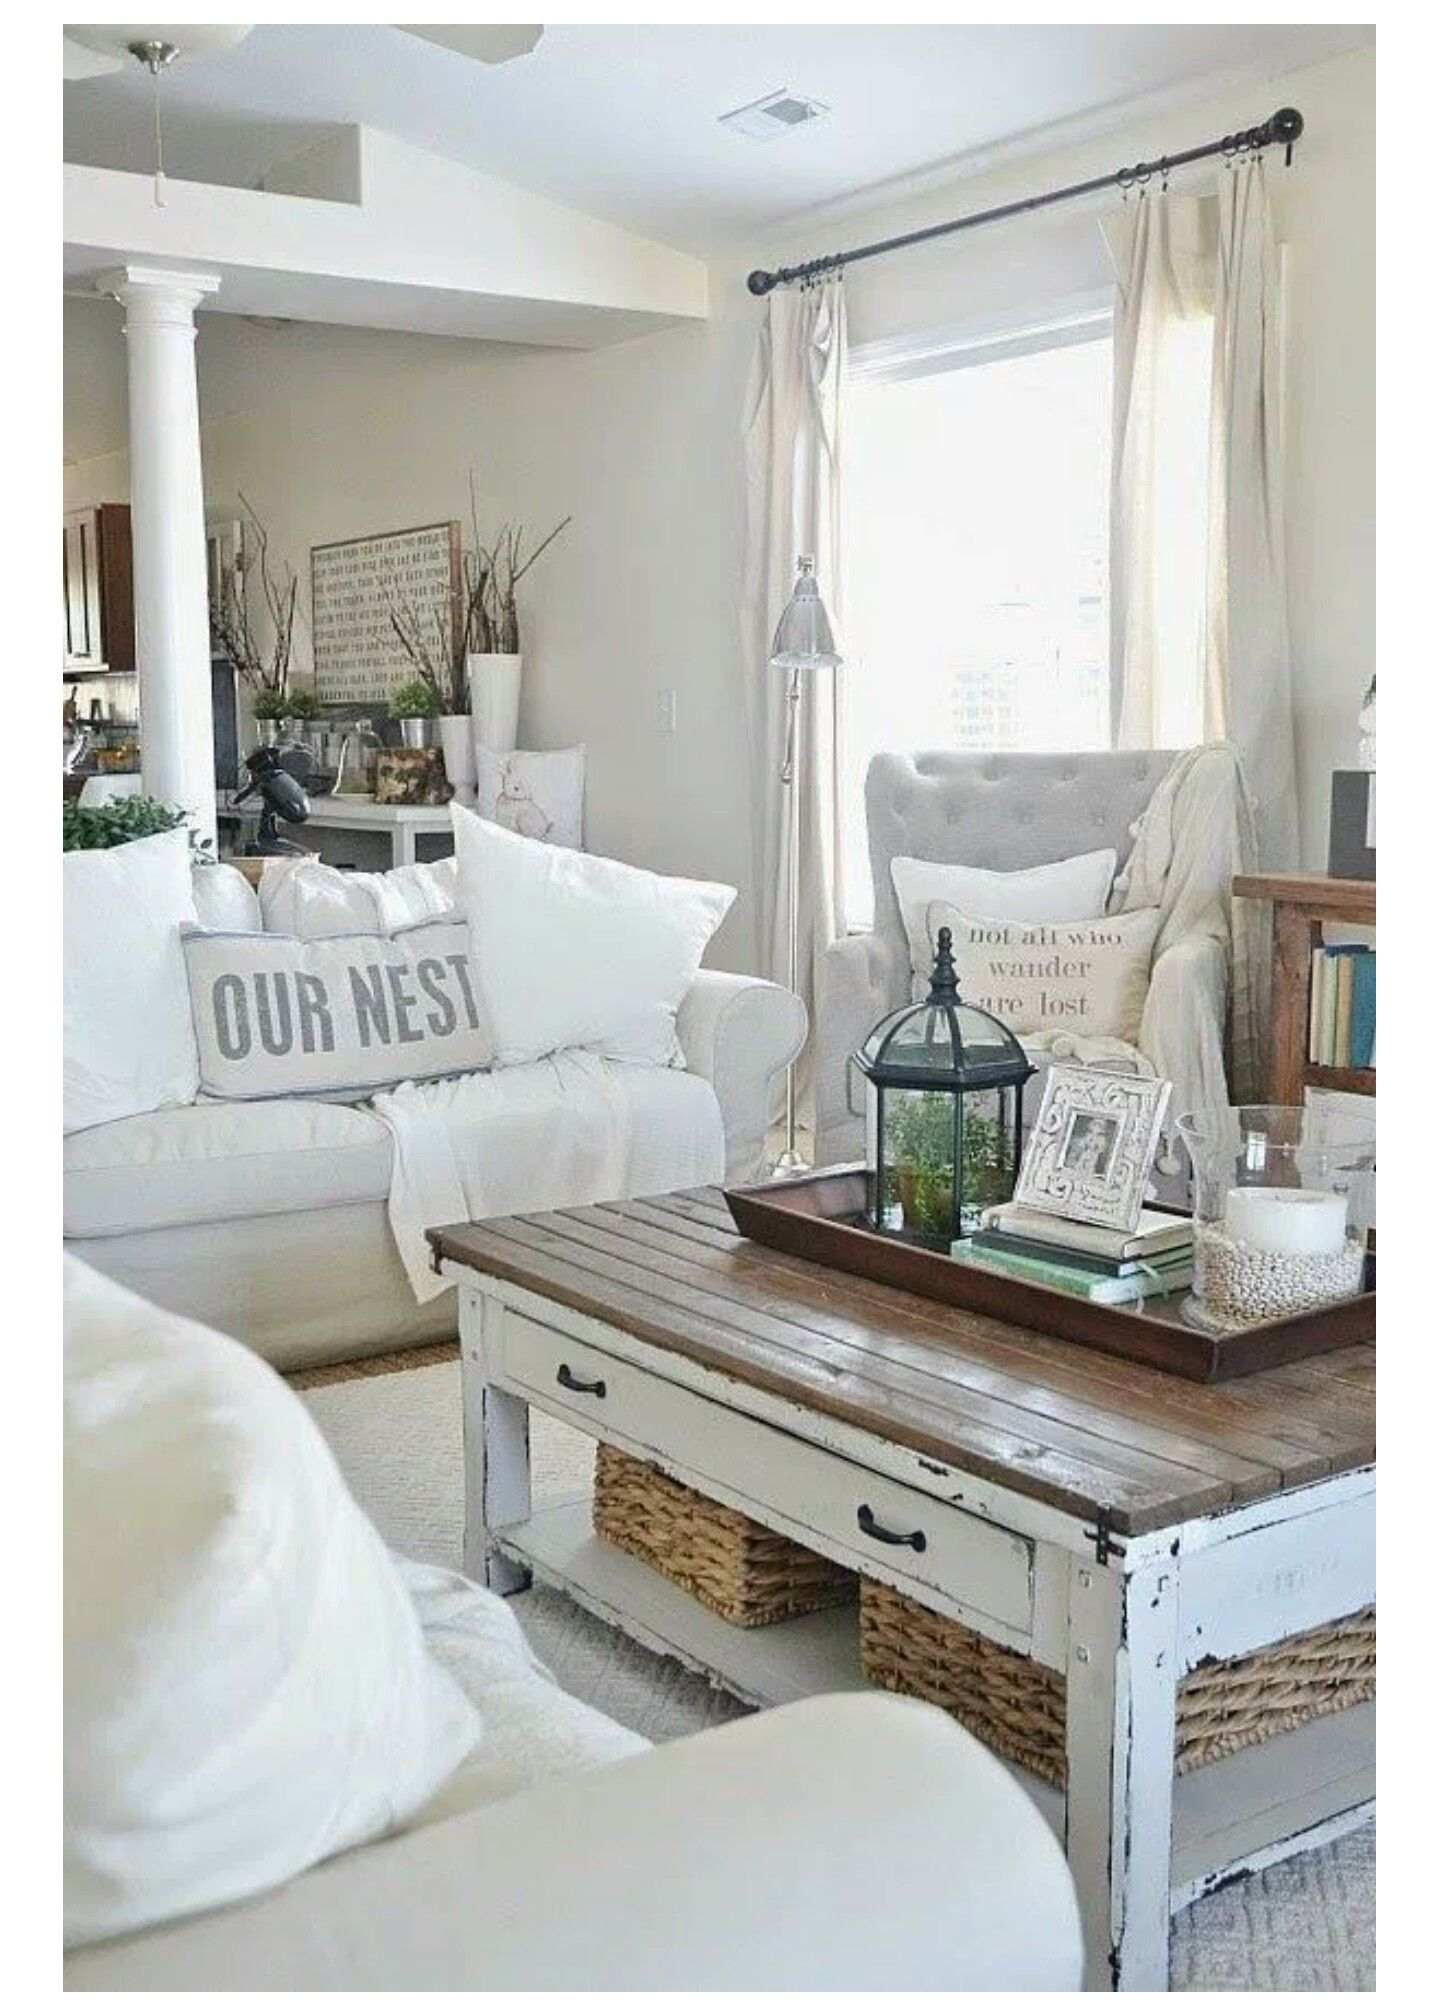 couches room ikea livings nest neutral by pin absolutely on tammie farmhouse i slipcovered lovely pinterest the boatwright cozy love pillow rooms and family beachy our living